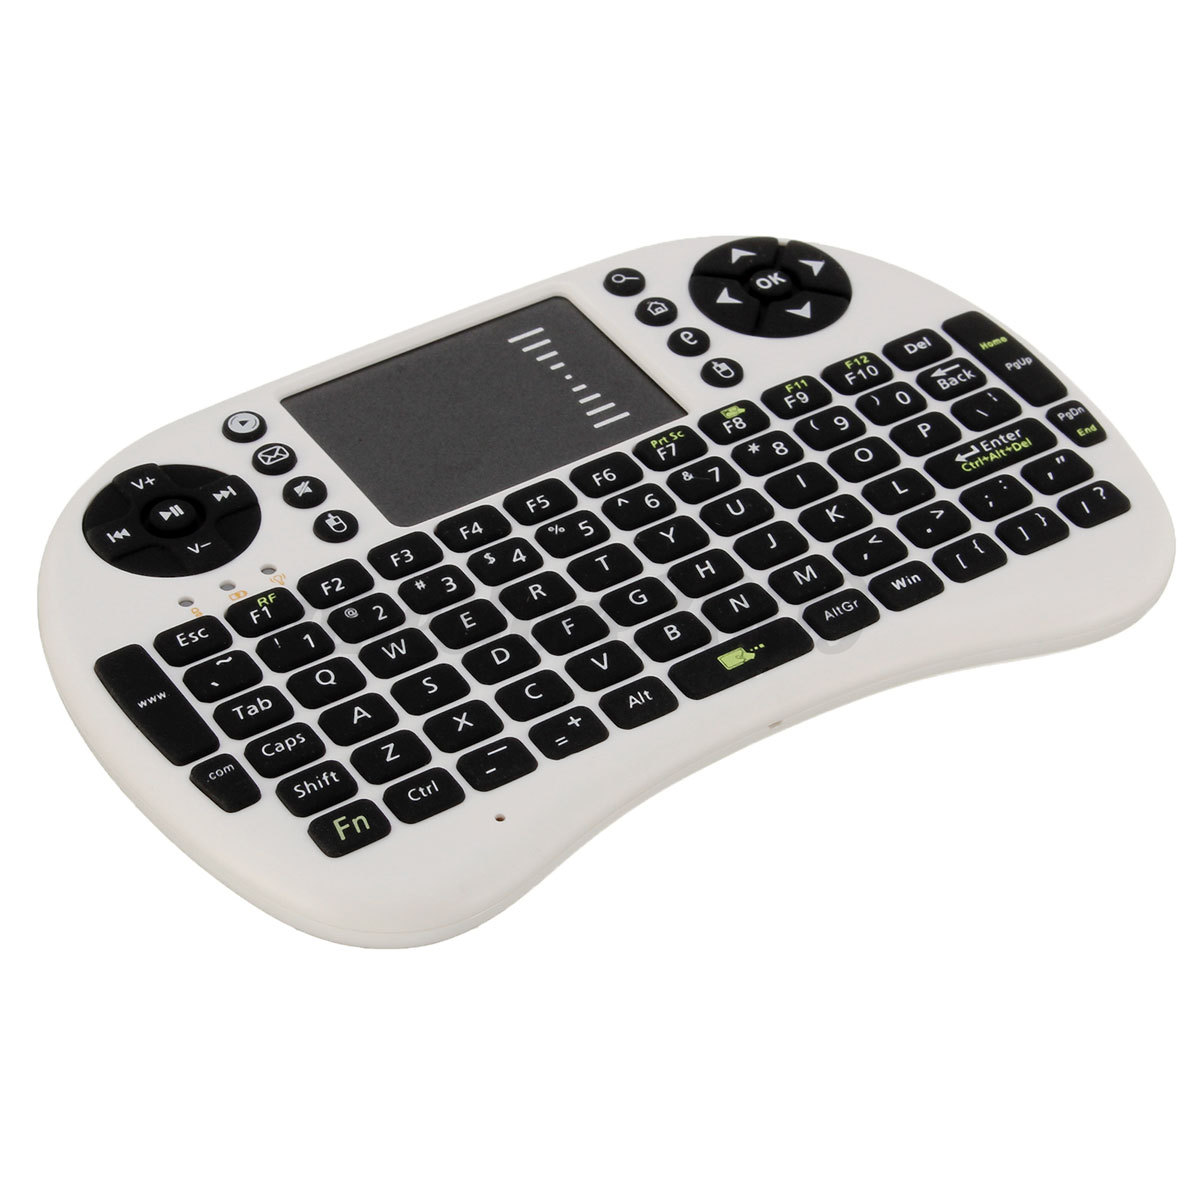 Bluetooth Keyboard For Android Box: Mini 2.4GHz Wireless Keyboard Touchpad Mouse Combo For Android TV Box HDPC Win 7